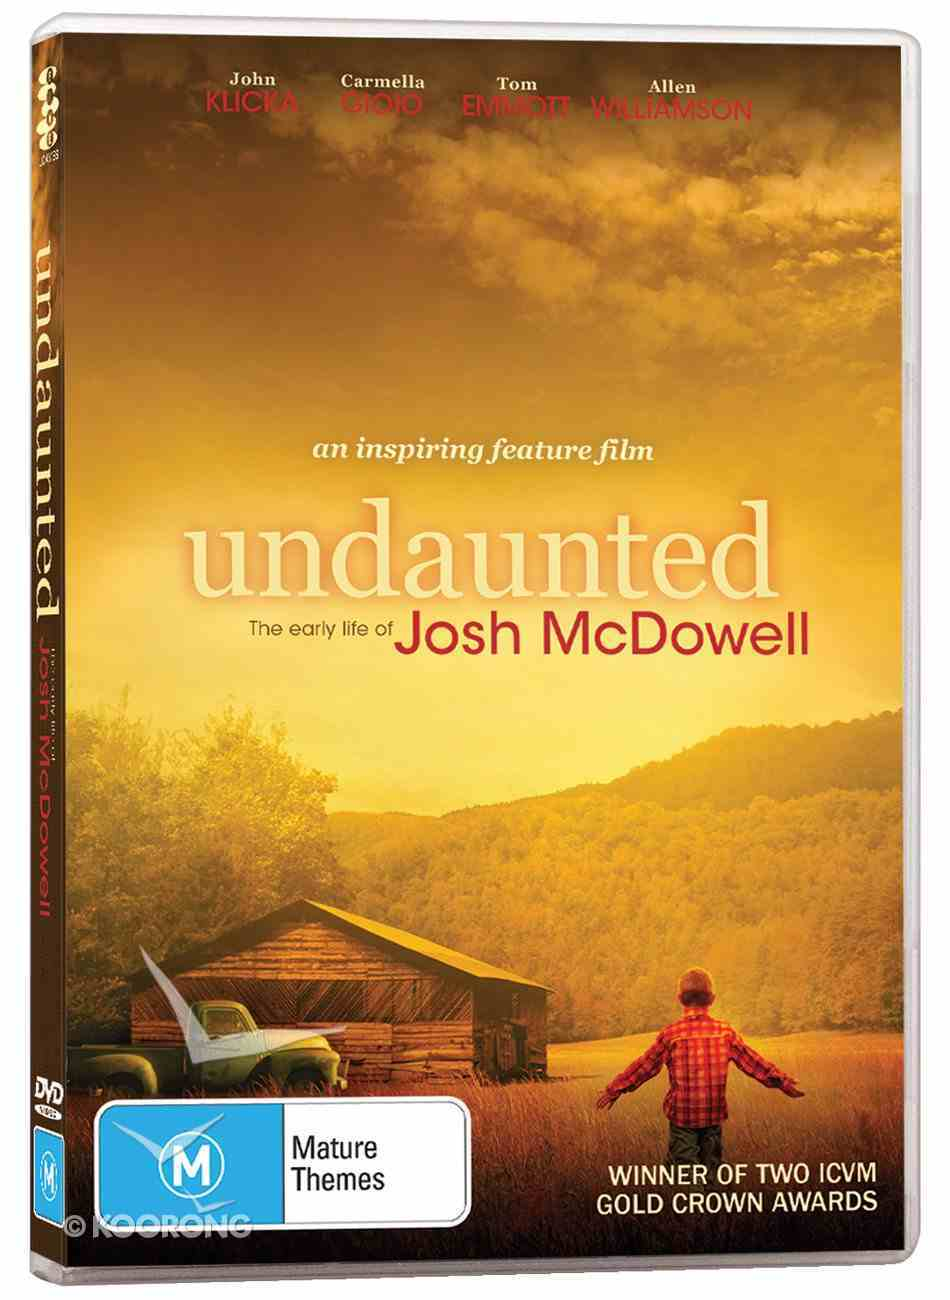 Undaunted: The Early Life of Josh Mcdowell DVD